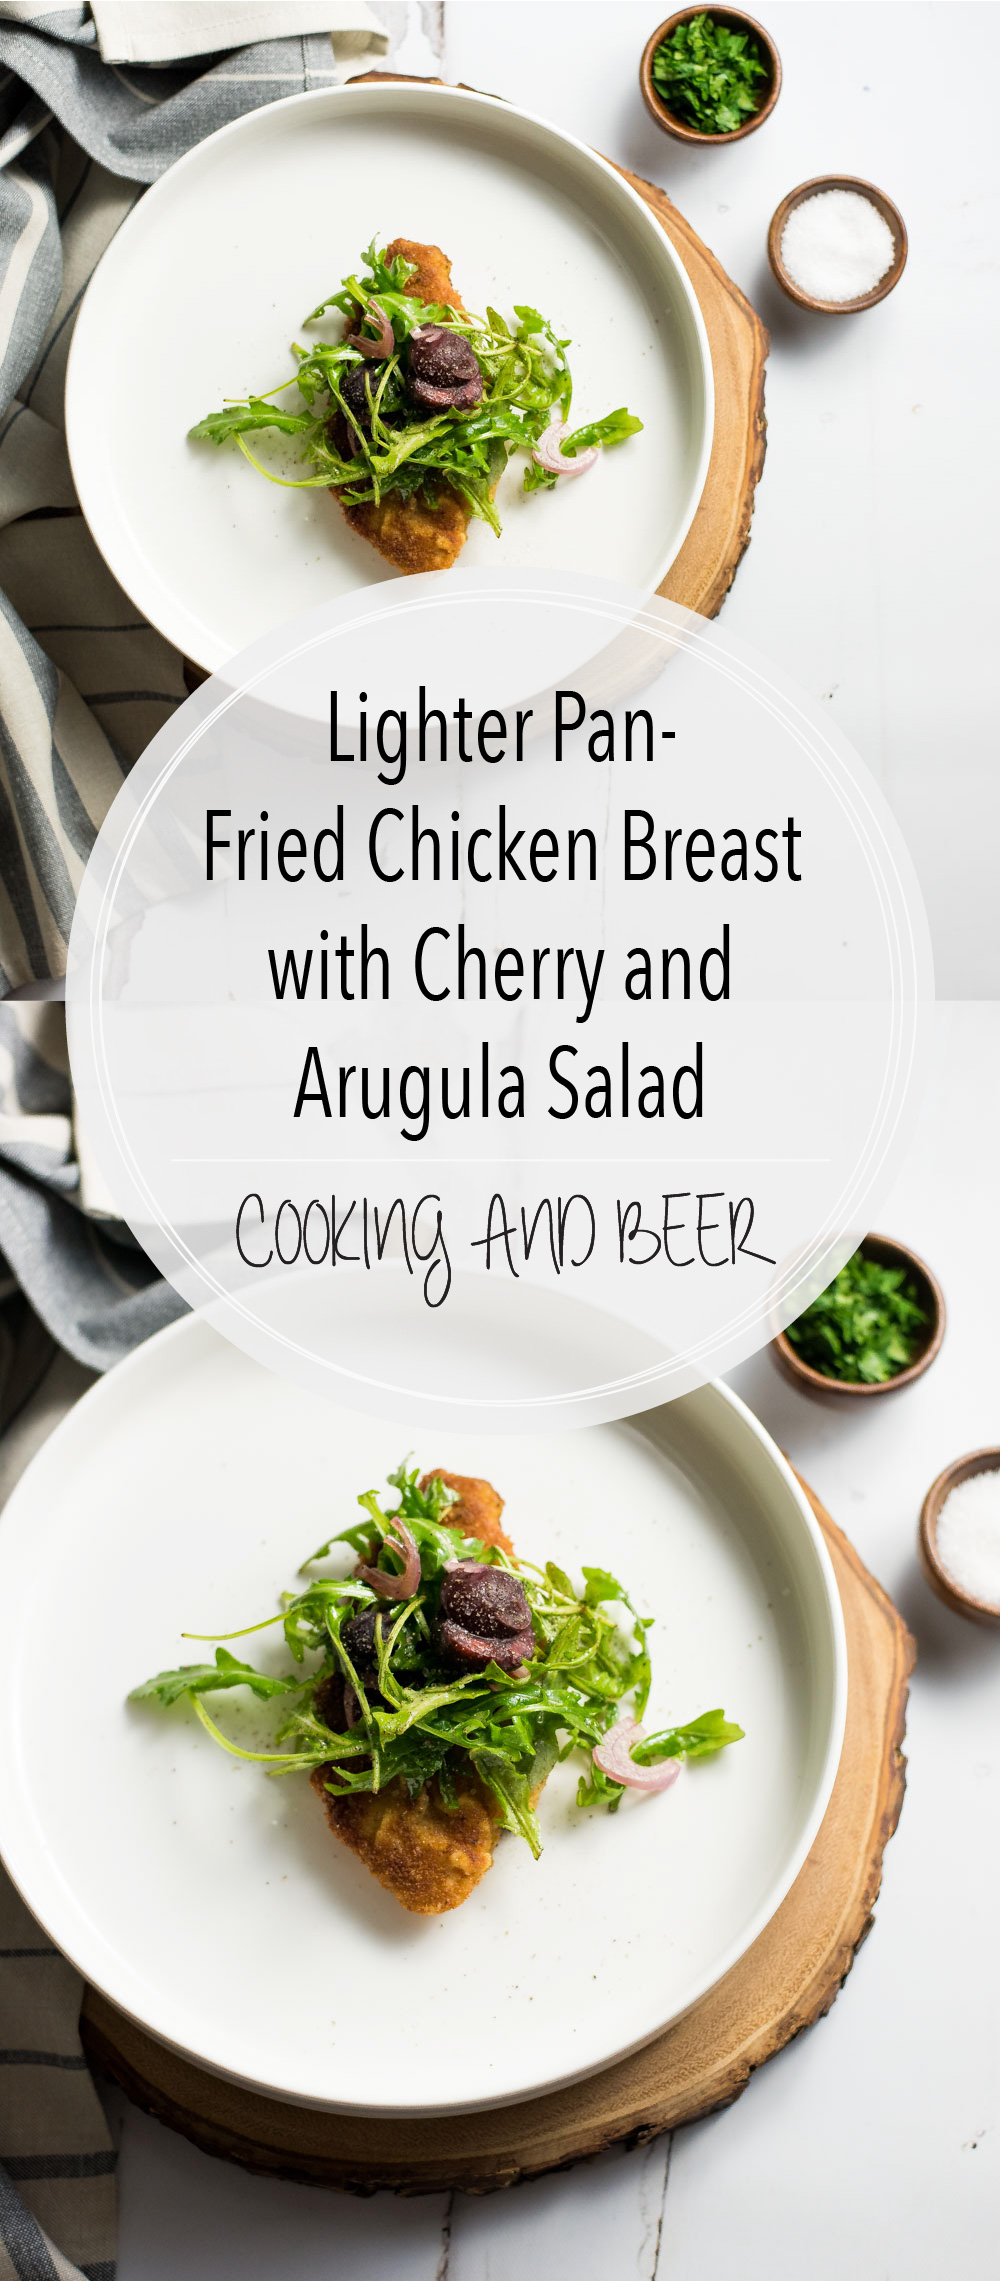 Lighter pan-fried chicken breast with cherry and arugula salad is the perfect weeknight meal that is light, nutritious, and delicious!